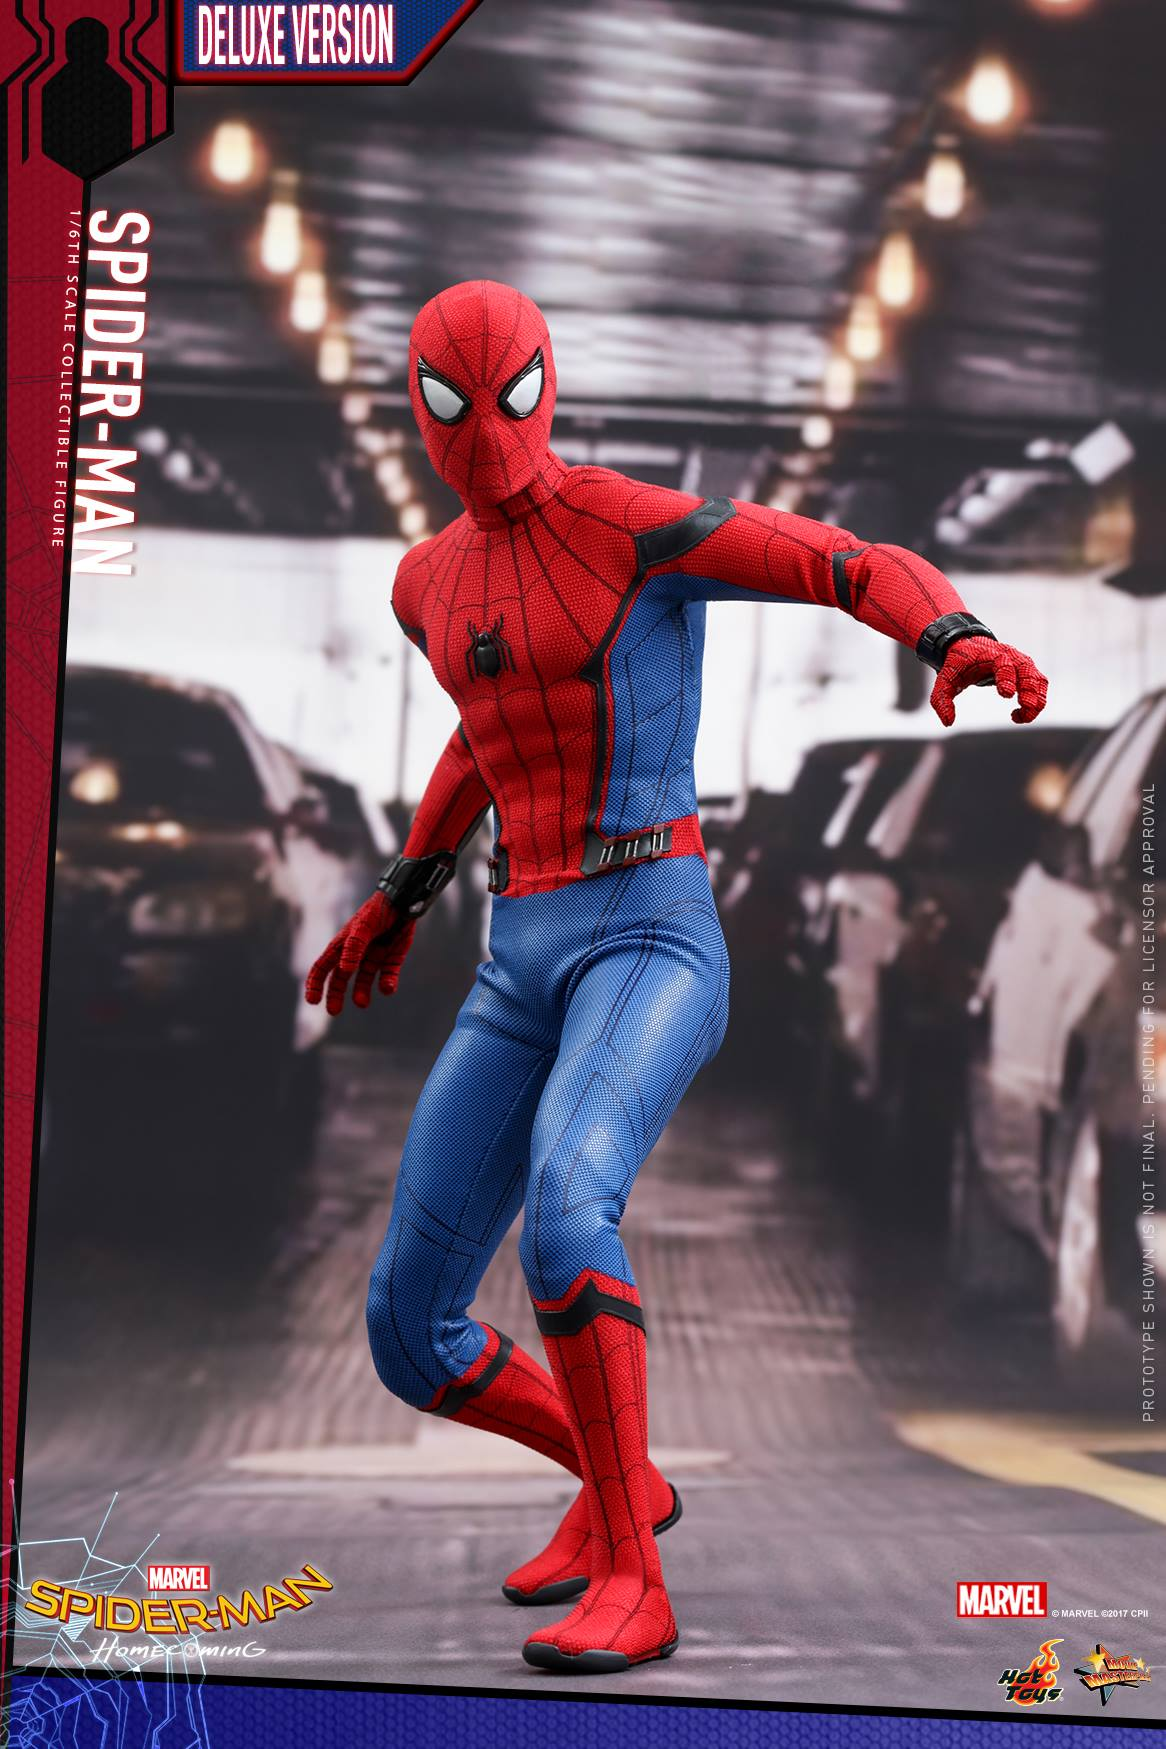 Spider-Man: Homecoming Hot Toy (Deluxe Version)